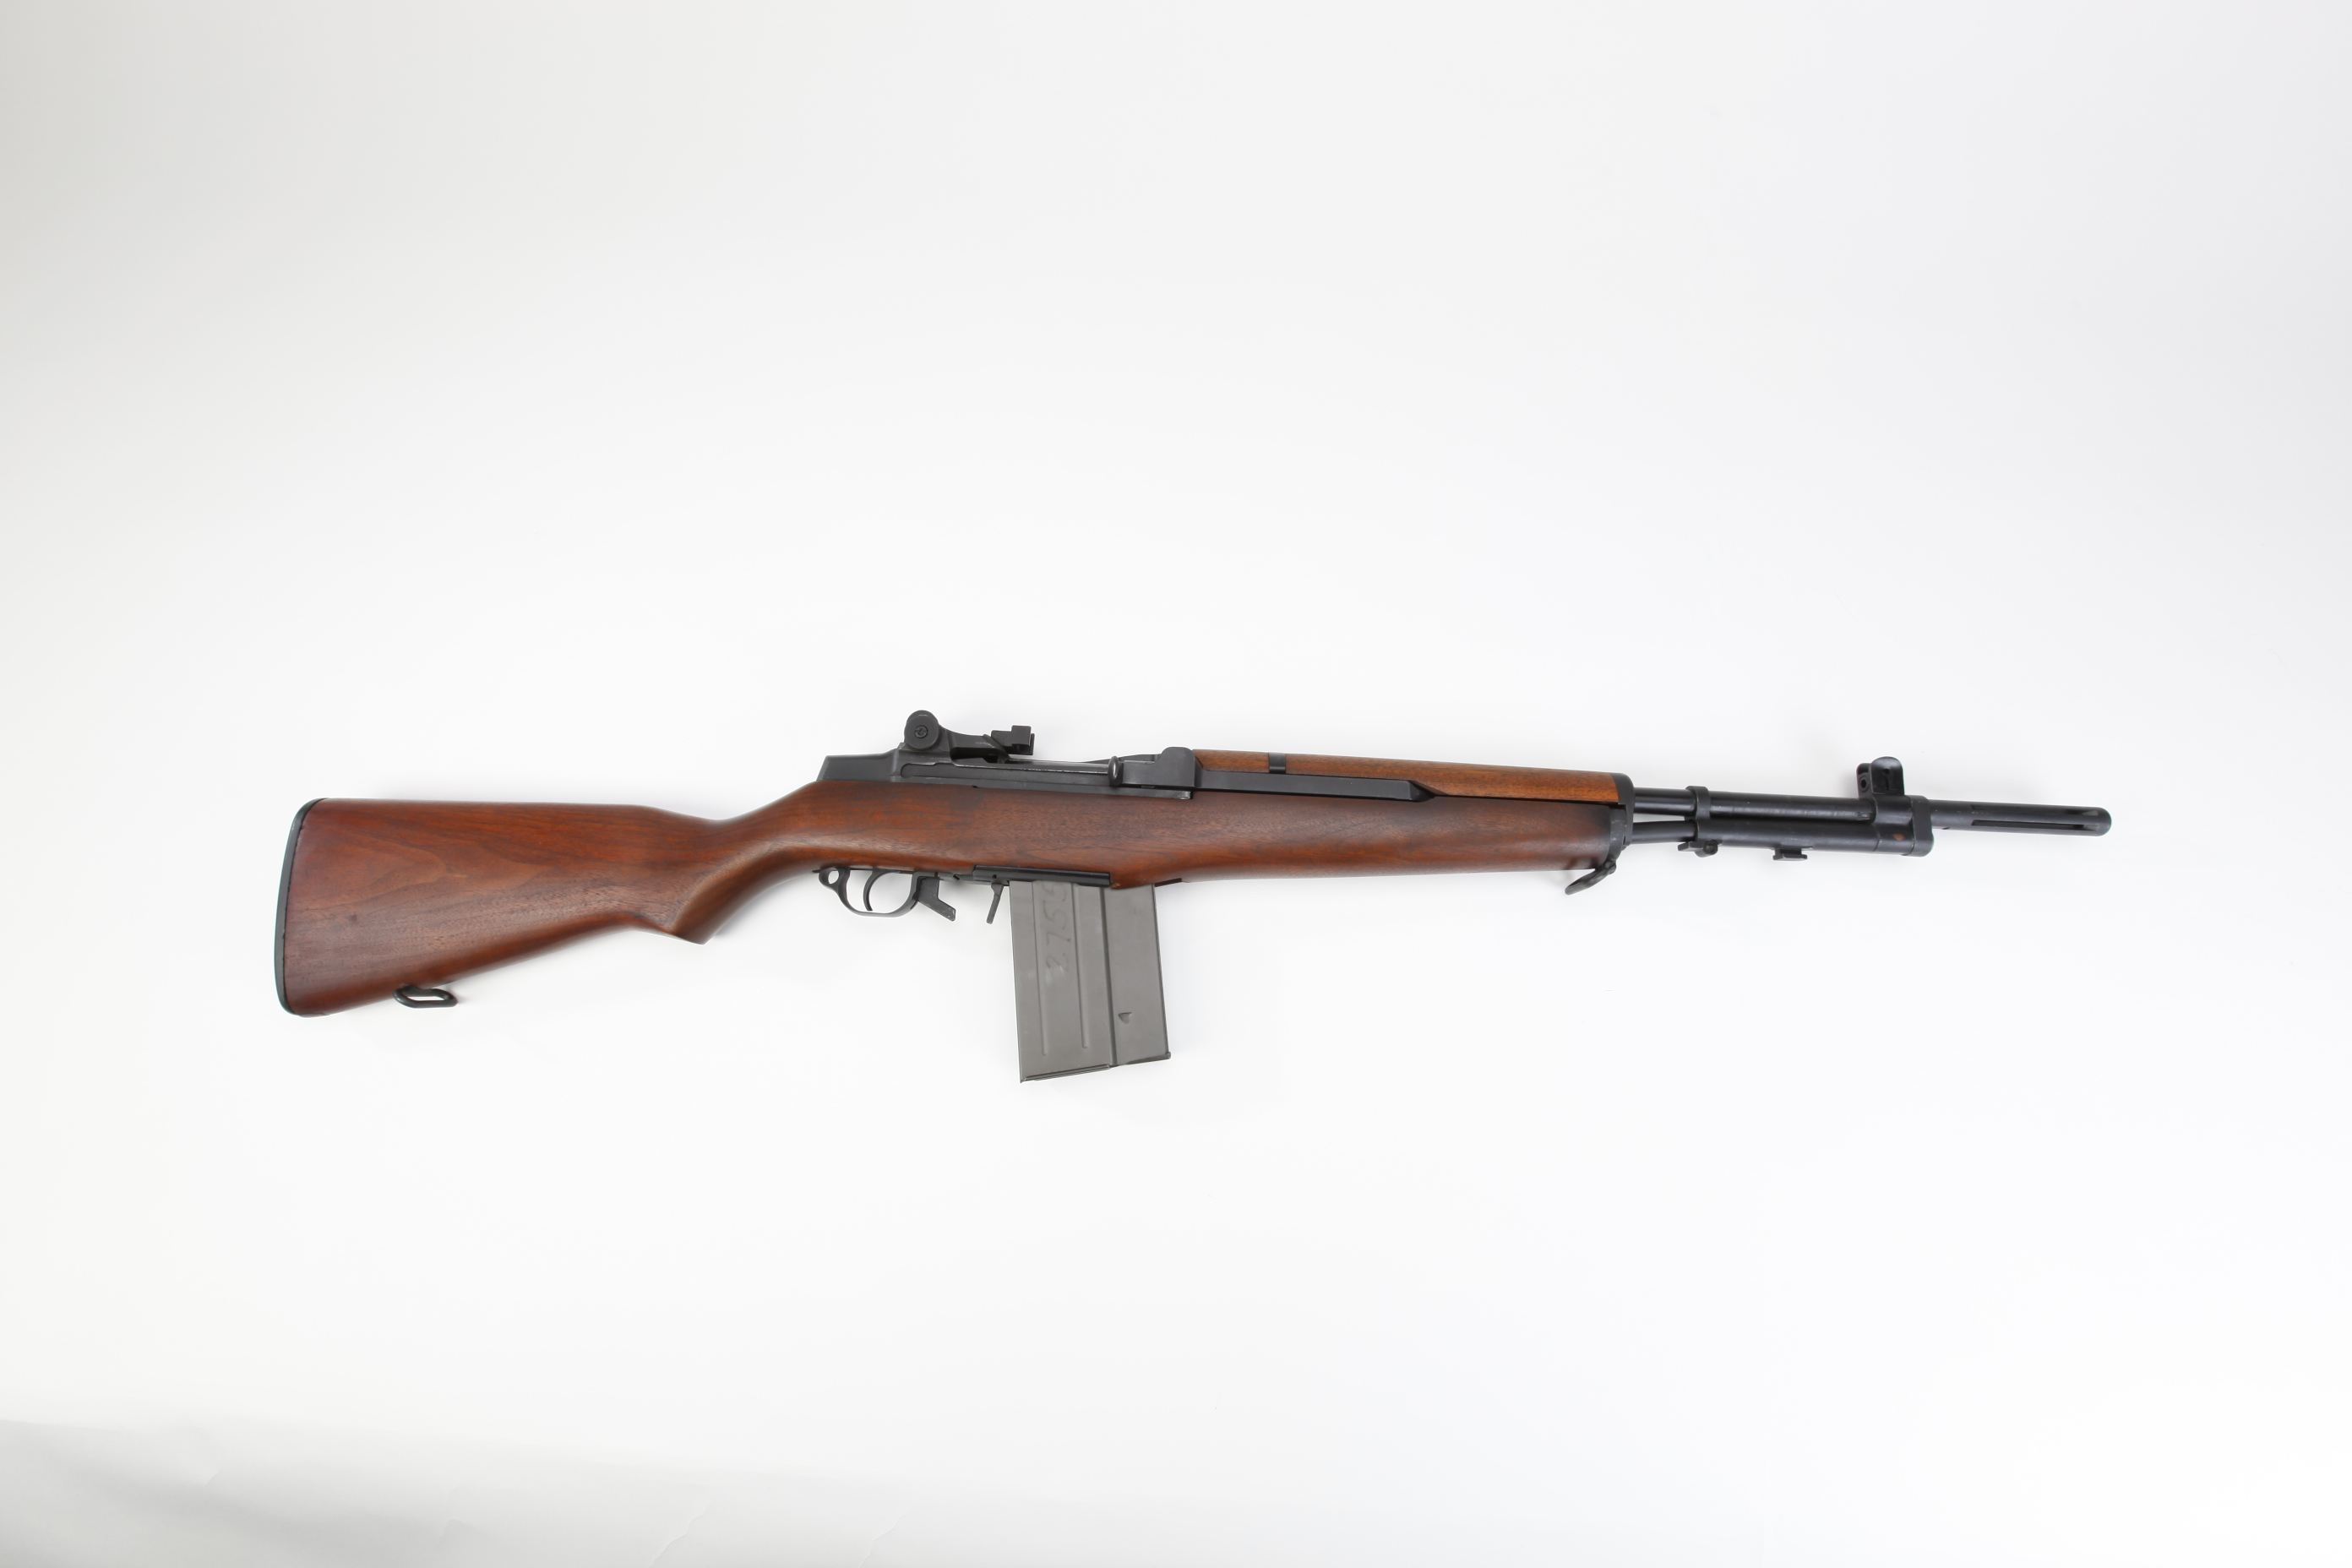 Beretta BM 59 Semi Automatic Rifle